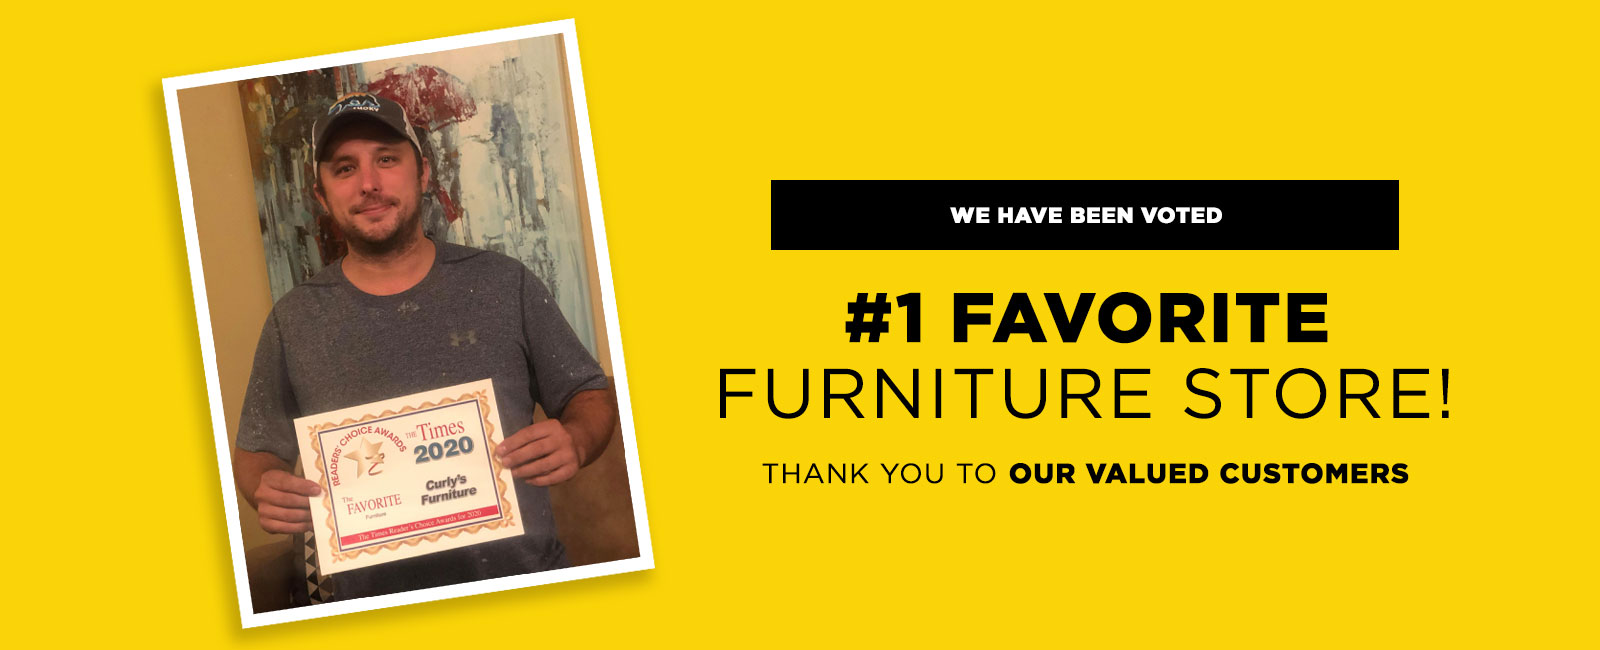 Voted #1 Favorite Furniture Store in 2020